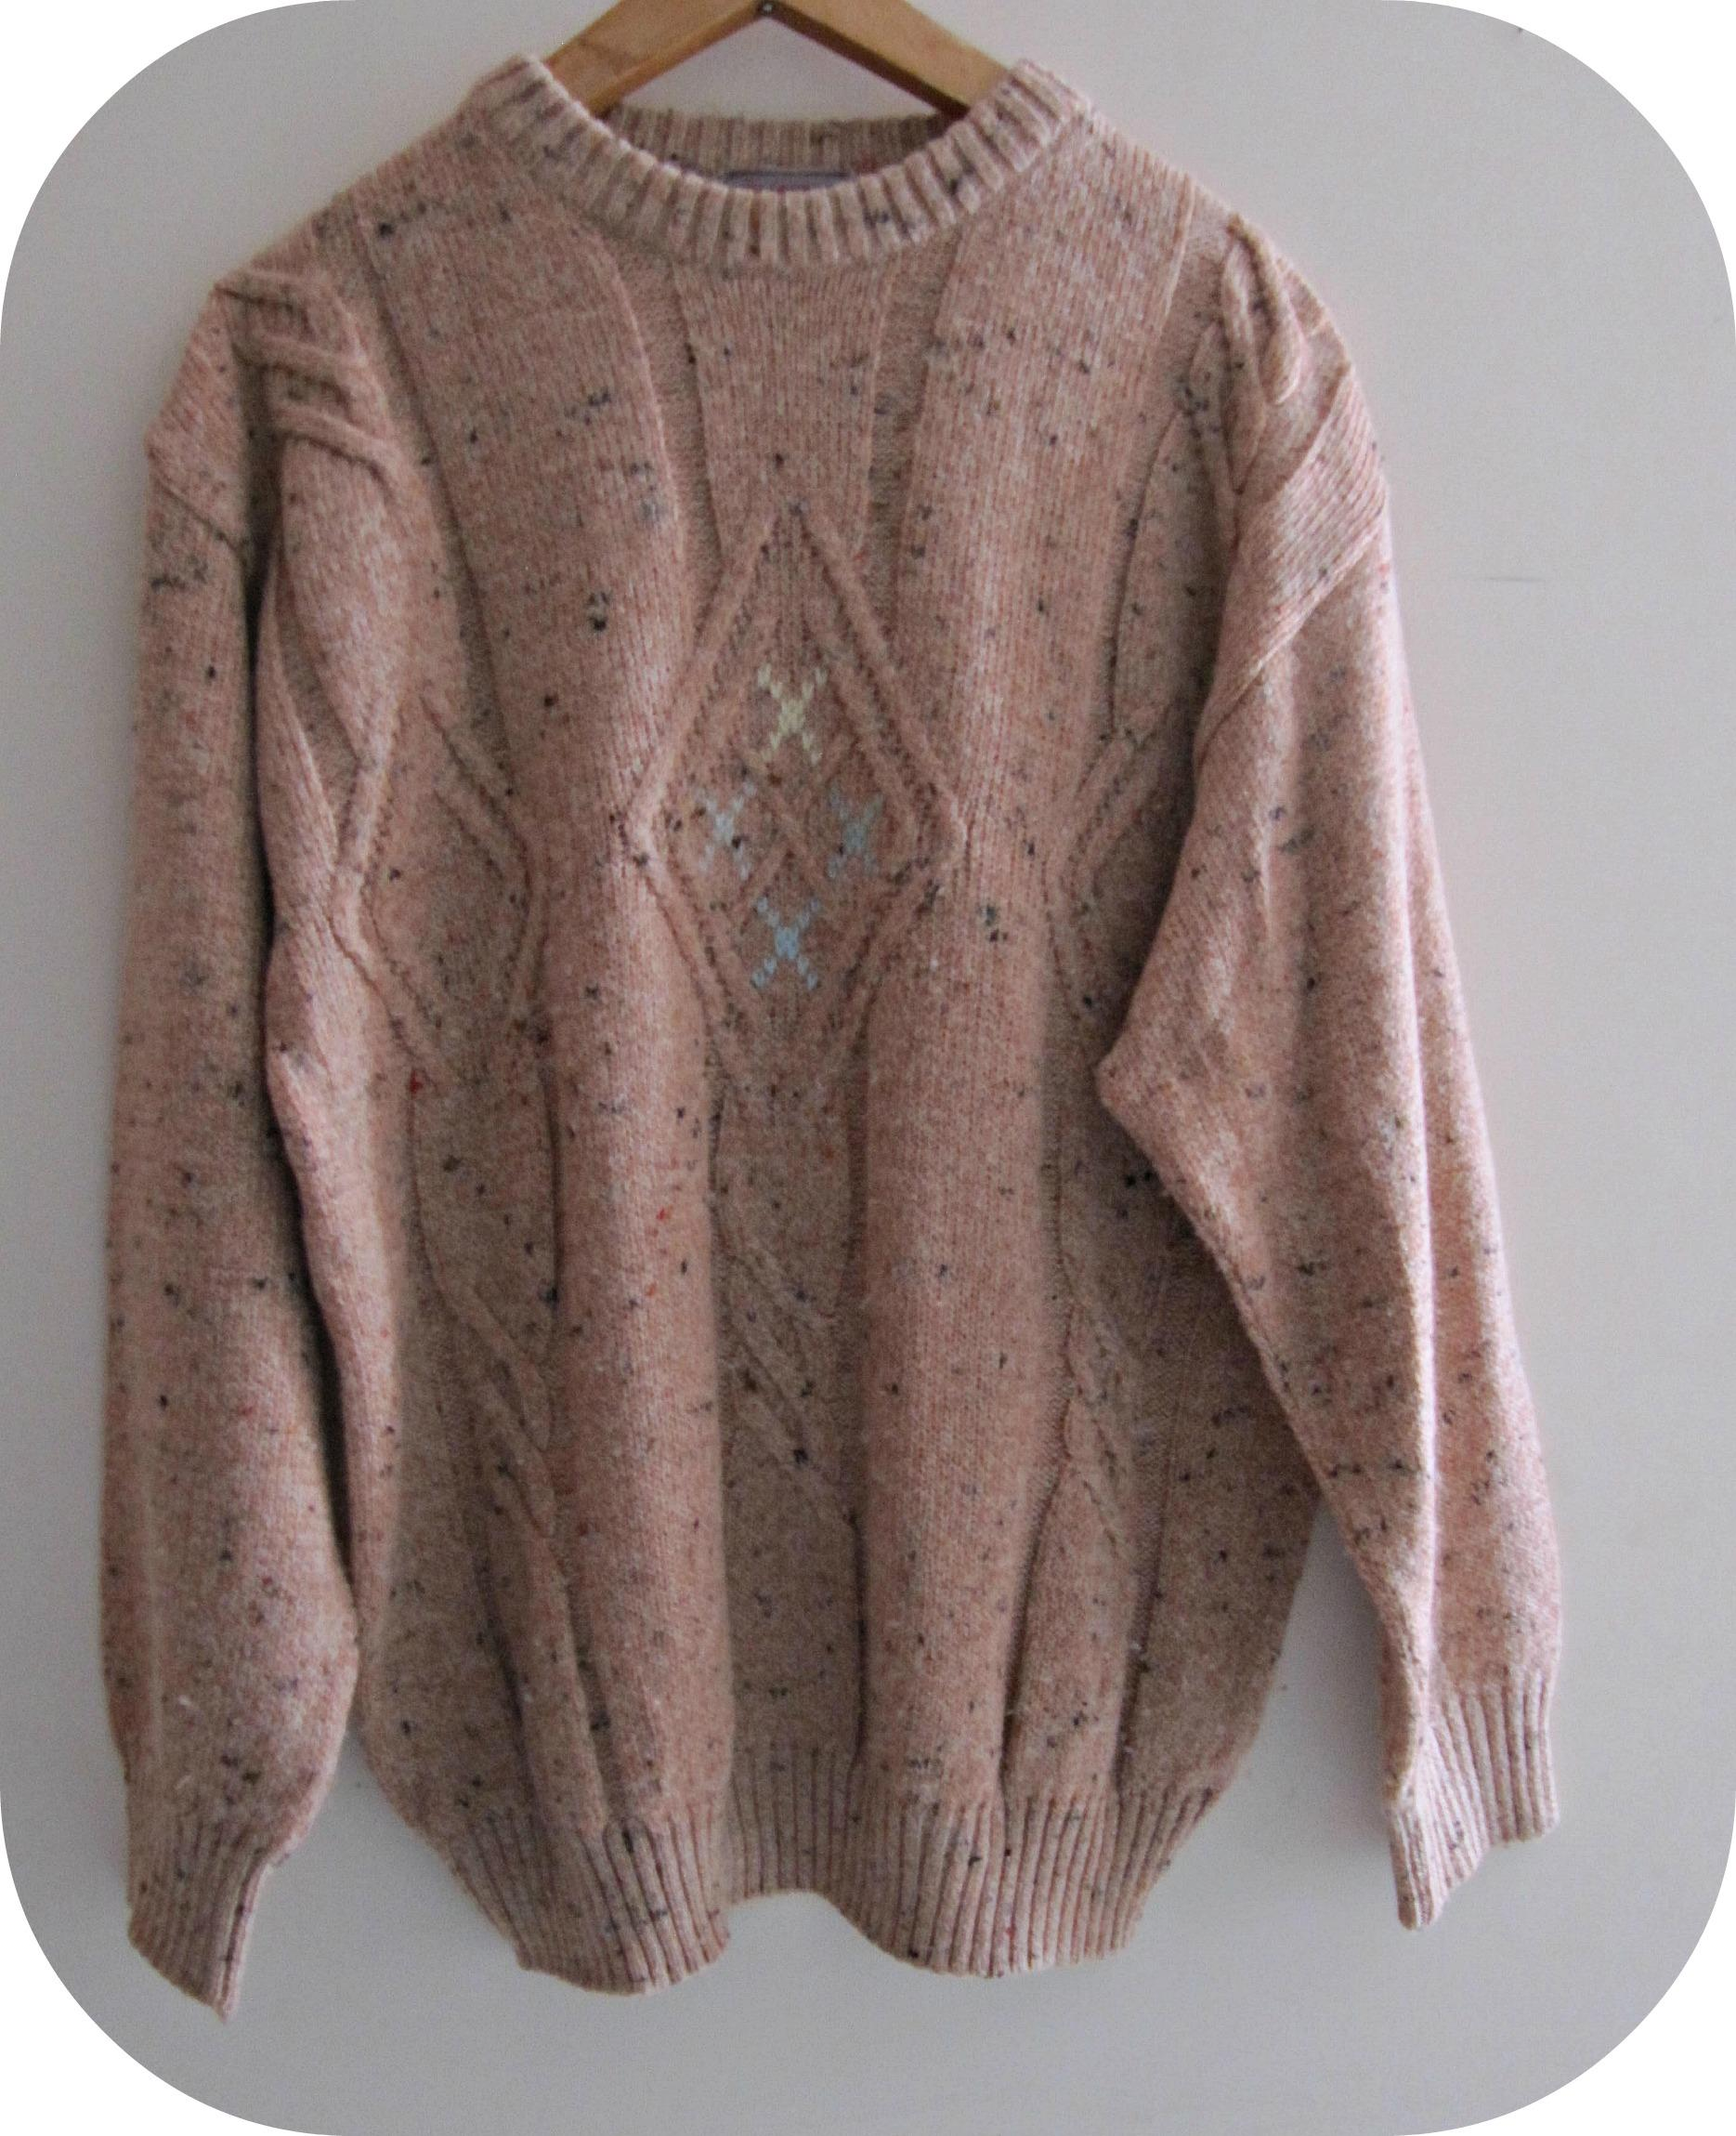 low priced 51d2f 0369c Maglione vintage rosa antico ,tg M